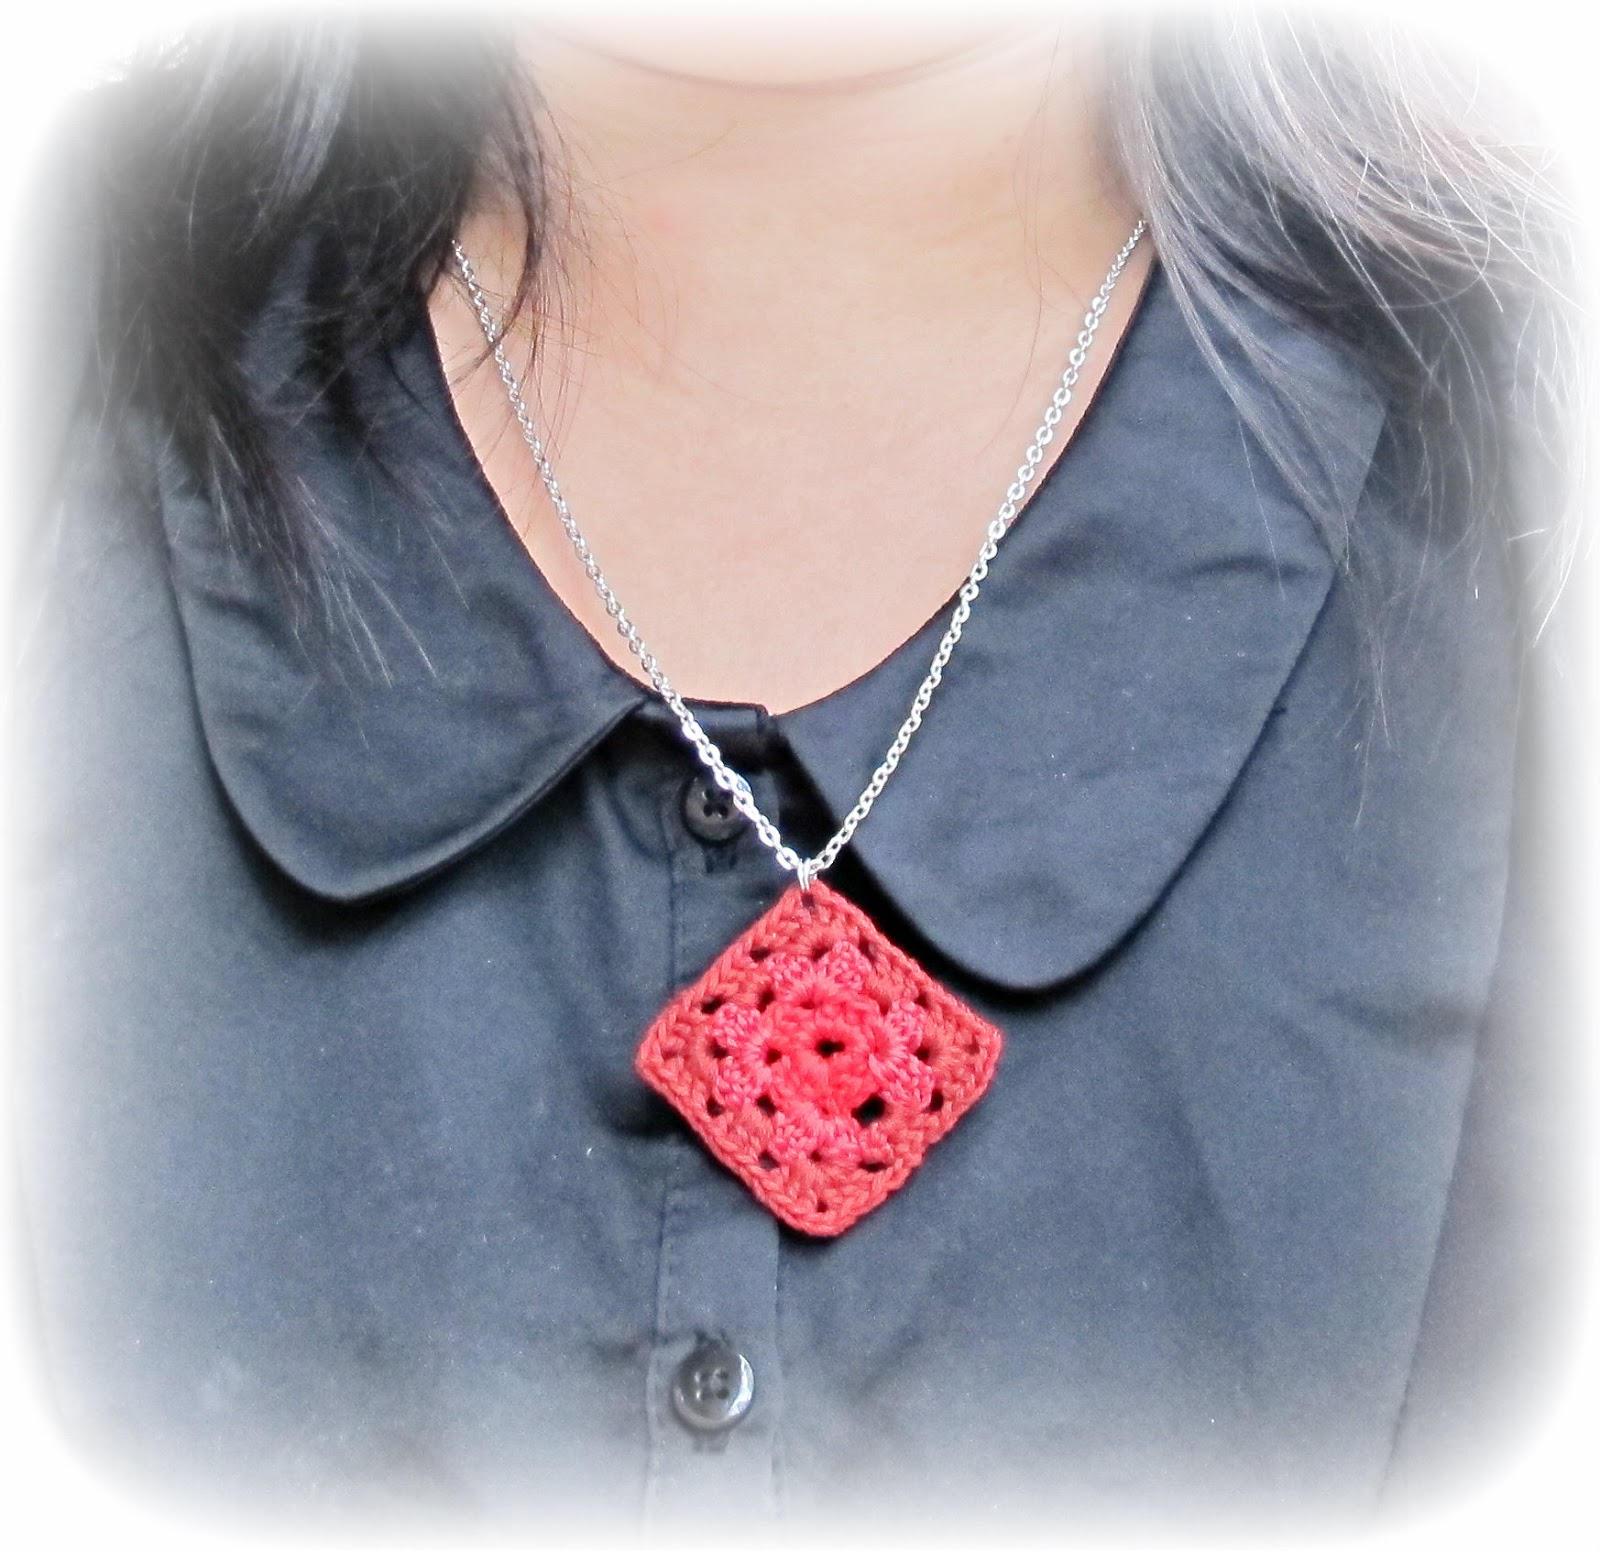 image granny square necklace red ombre embroidery floss chic jewellery jewelry